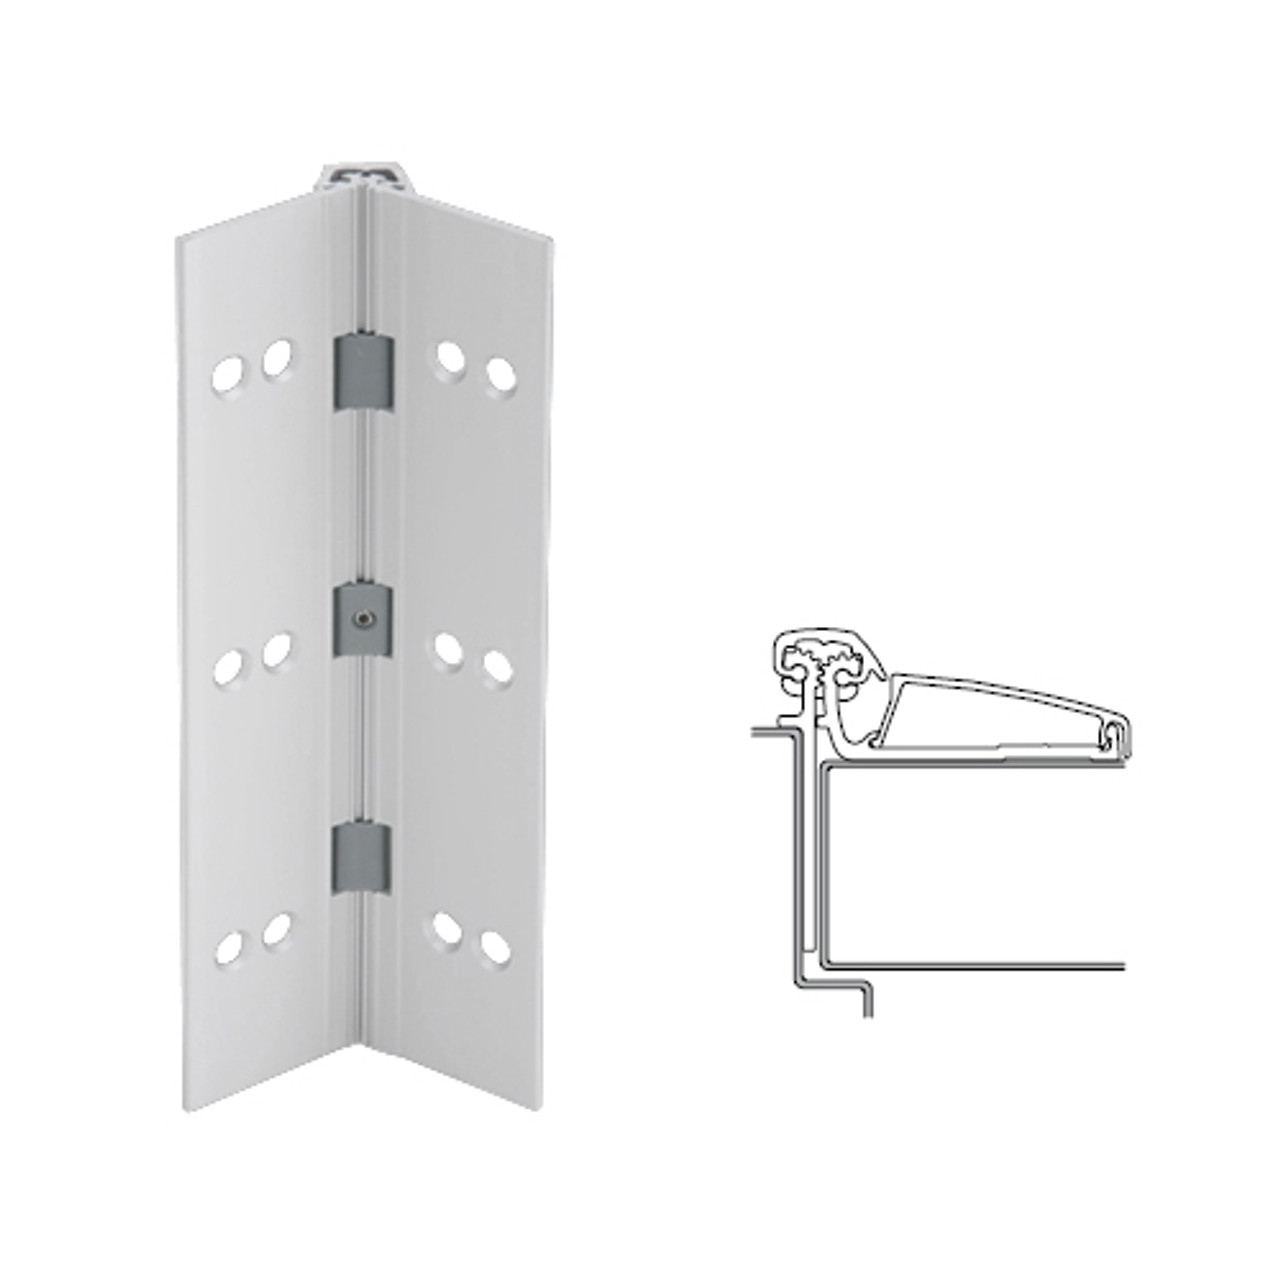 046XY-US28-85-TFWD IVES Adjustable Half Surface Continuous Geared Hinges with Thread Forming Screws in Satin Aluminum